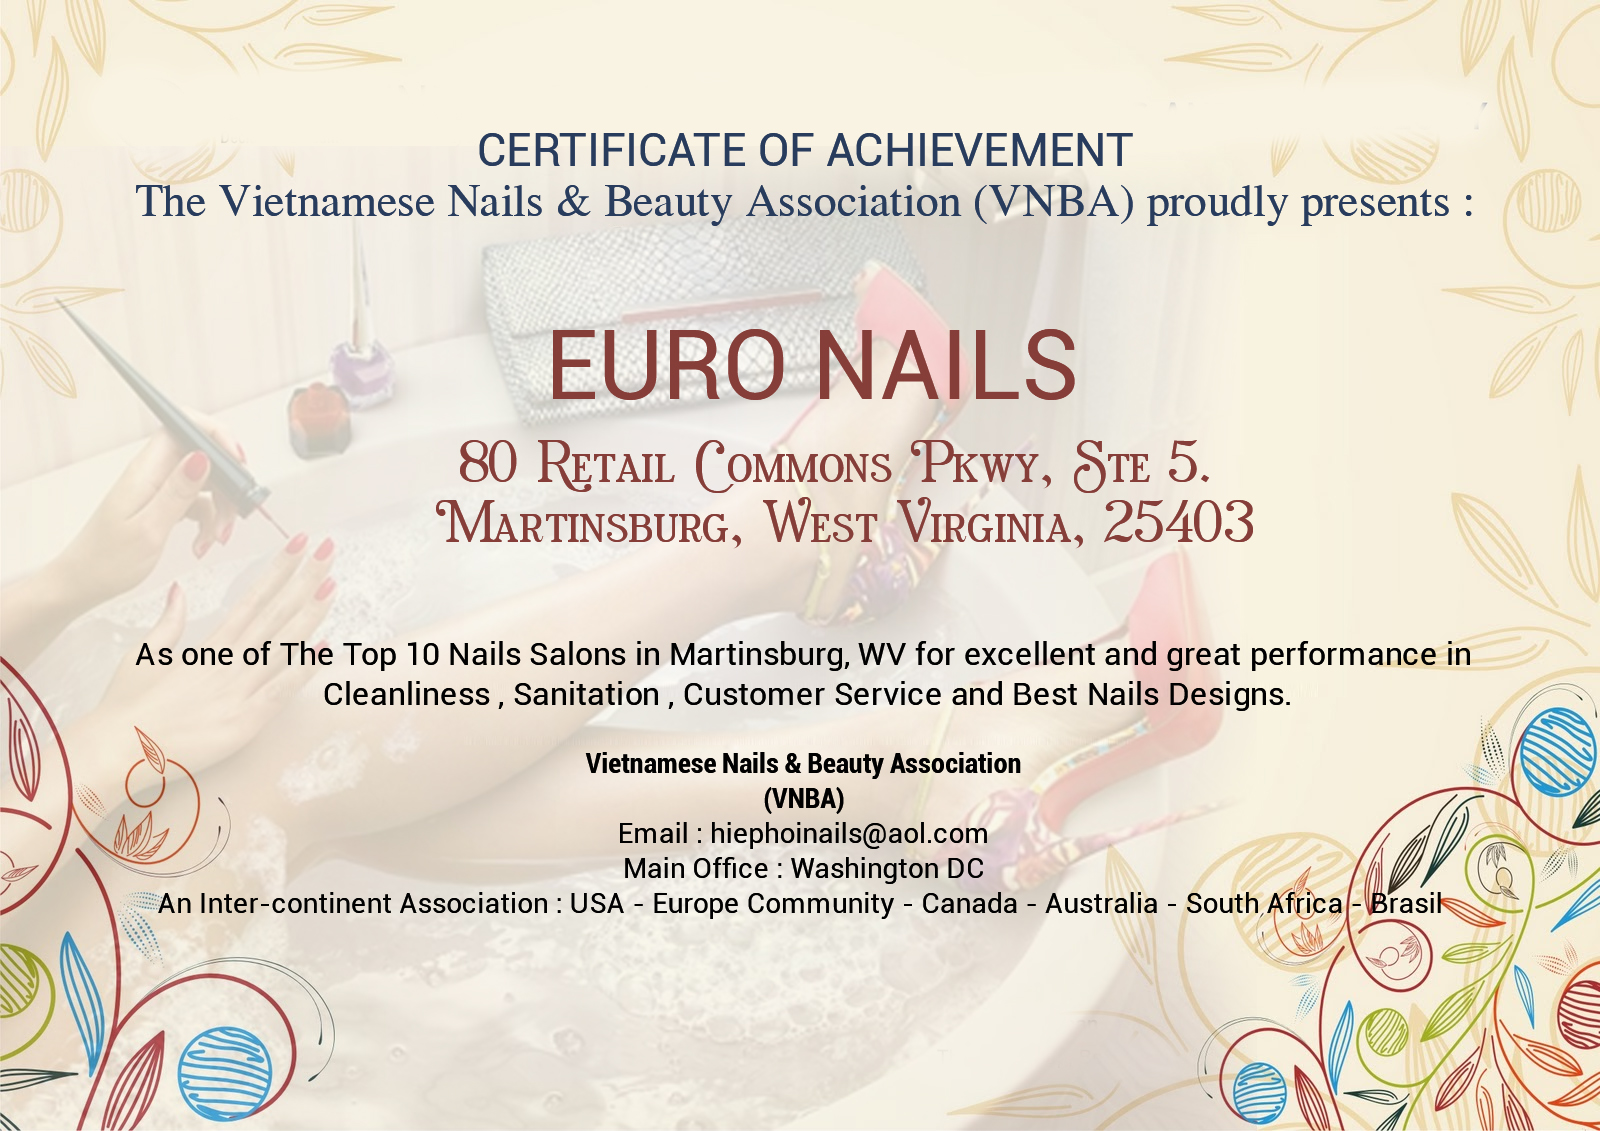 Nail salon Martinsburg | Nail salon 25403 | Euro Nails